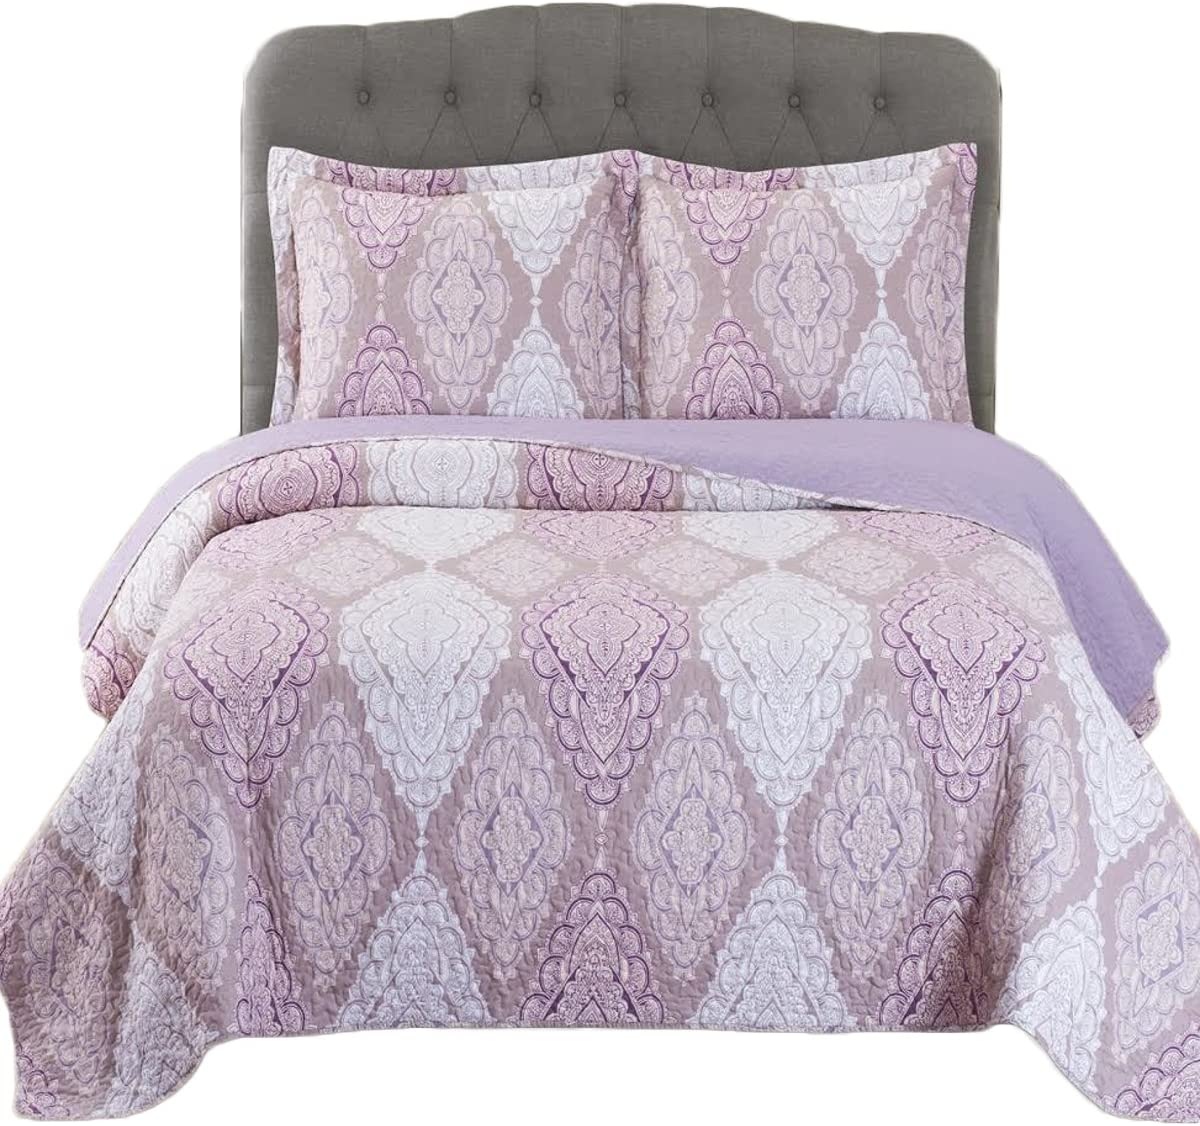 Jewel- online shopping Full Queen 92x96 Size Super Special SALE held 3pc Quilt Over-Sized Luxury Set